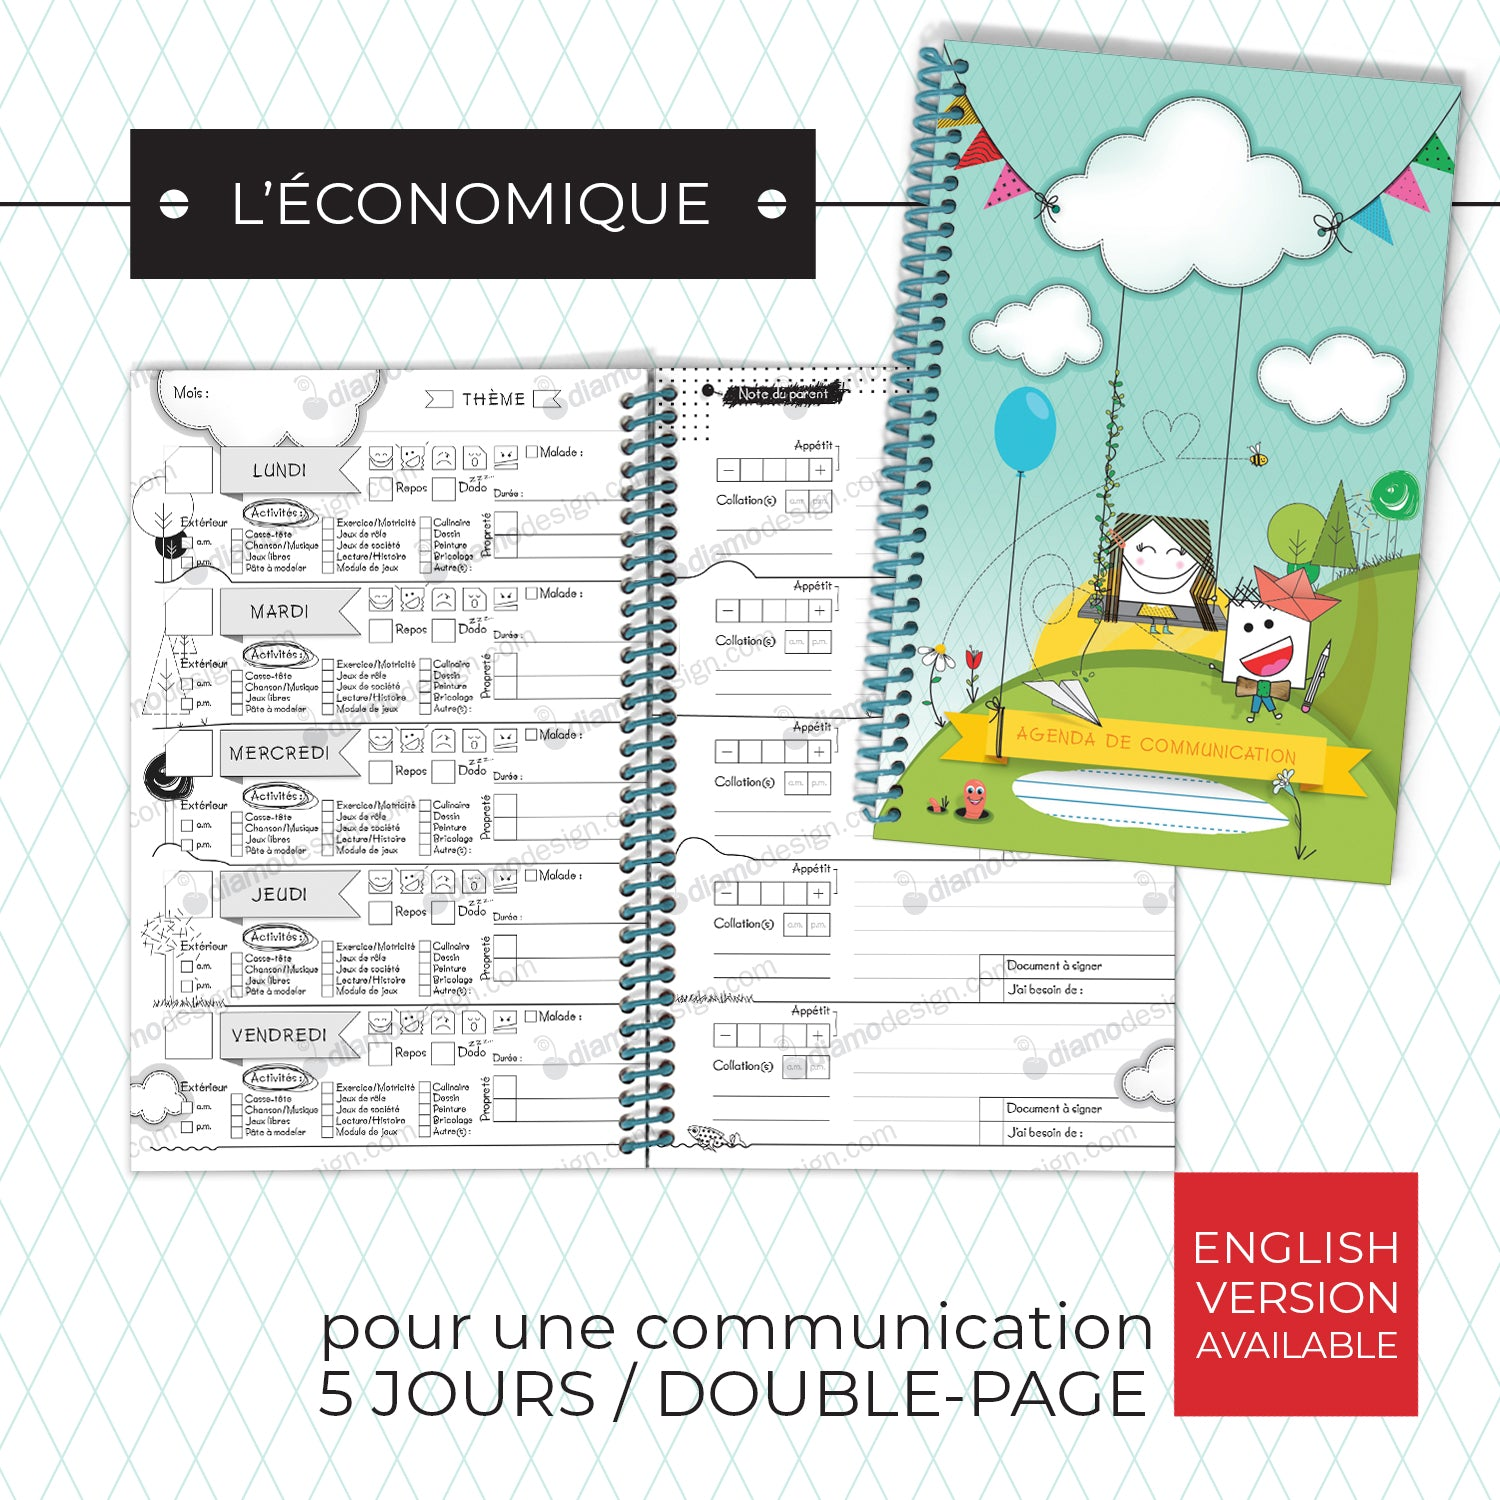 Couverture et semaine de l'agenda de communication de Diamodesign | Daycare Communication Diary also available.